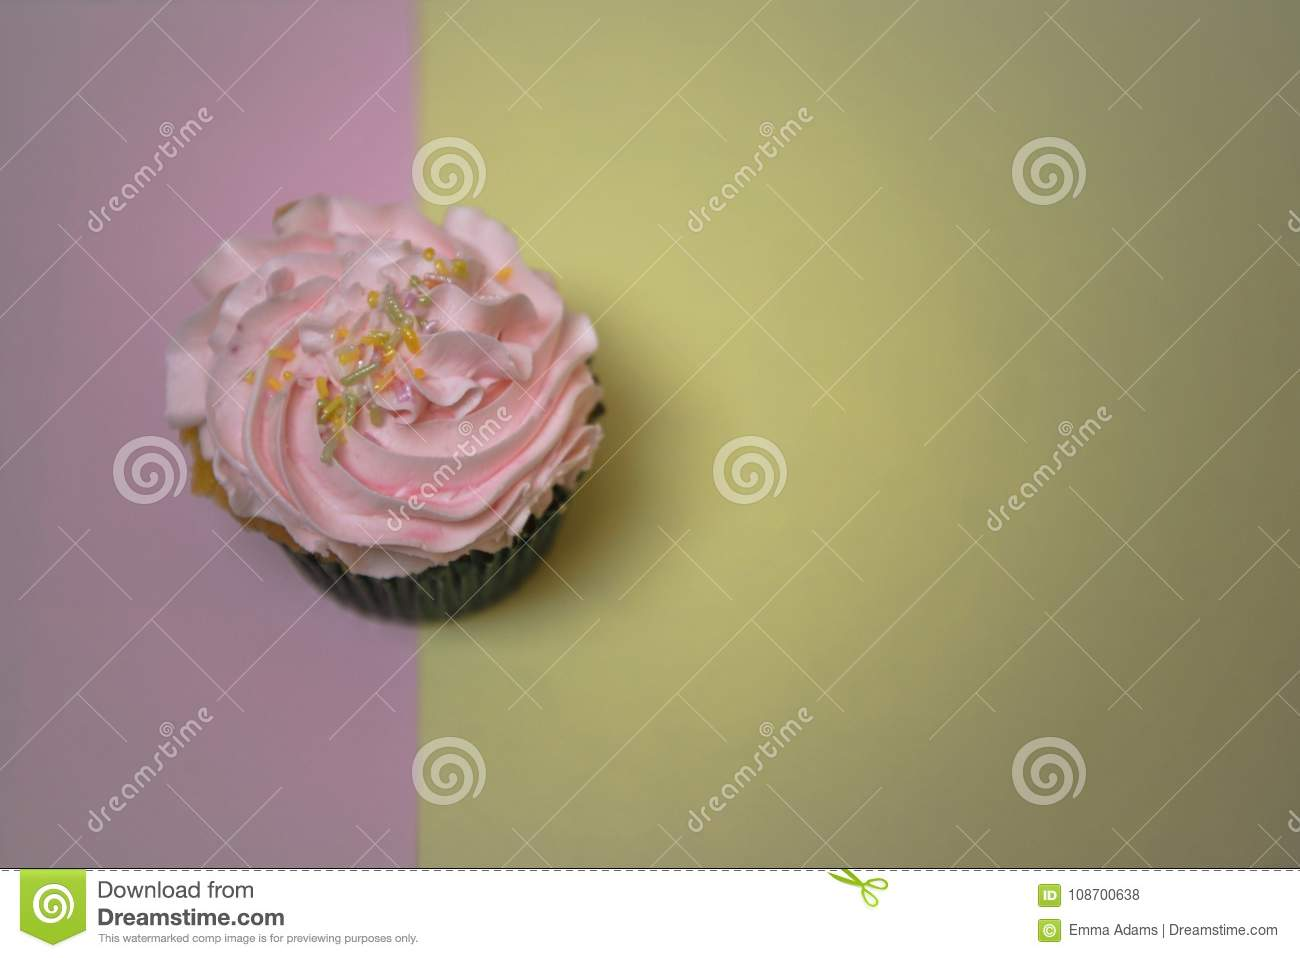 Overhead View Food Photography Of Homemade Cupcake With Pink